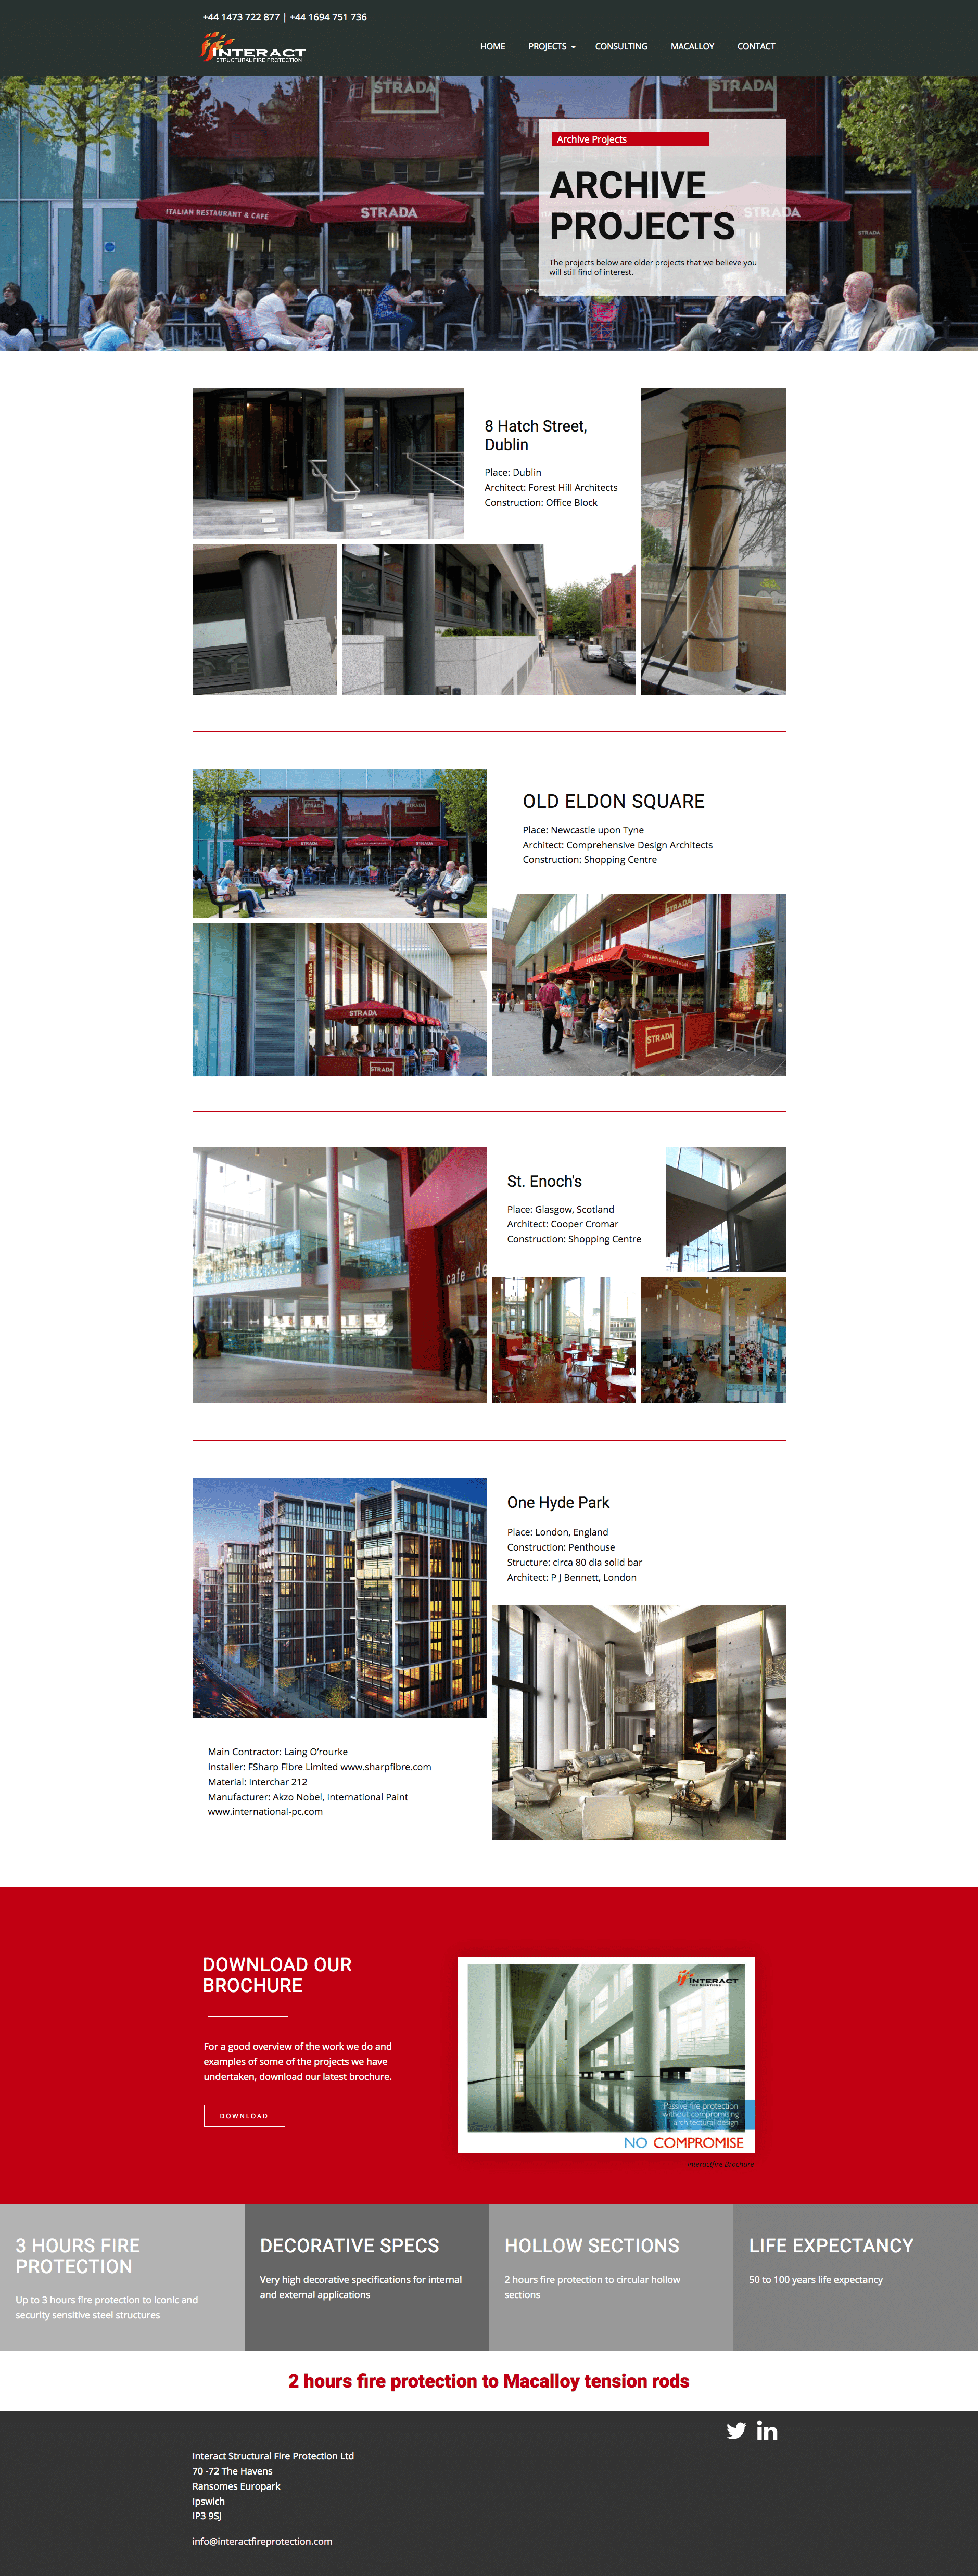 Archive-Projects – interactfireprotection.com